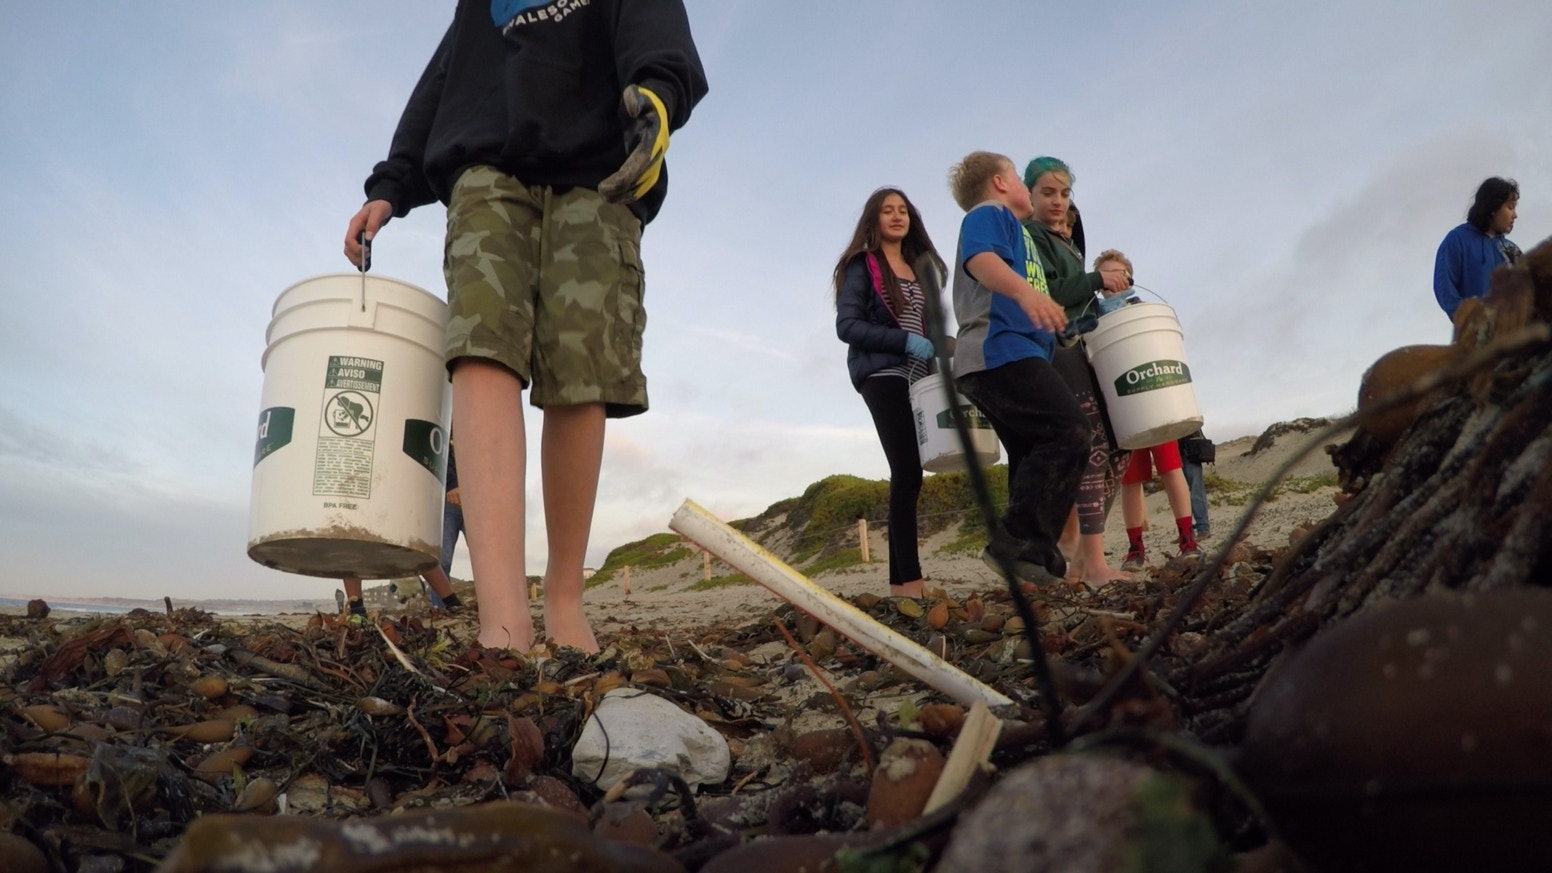 STRAWS is a short documentary about plastic straw litter and how community activists are making a sea of change one straw at a time.